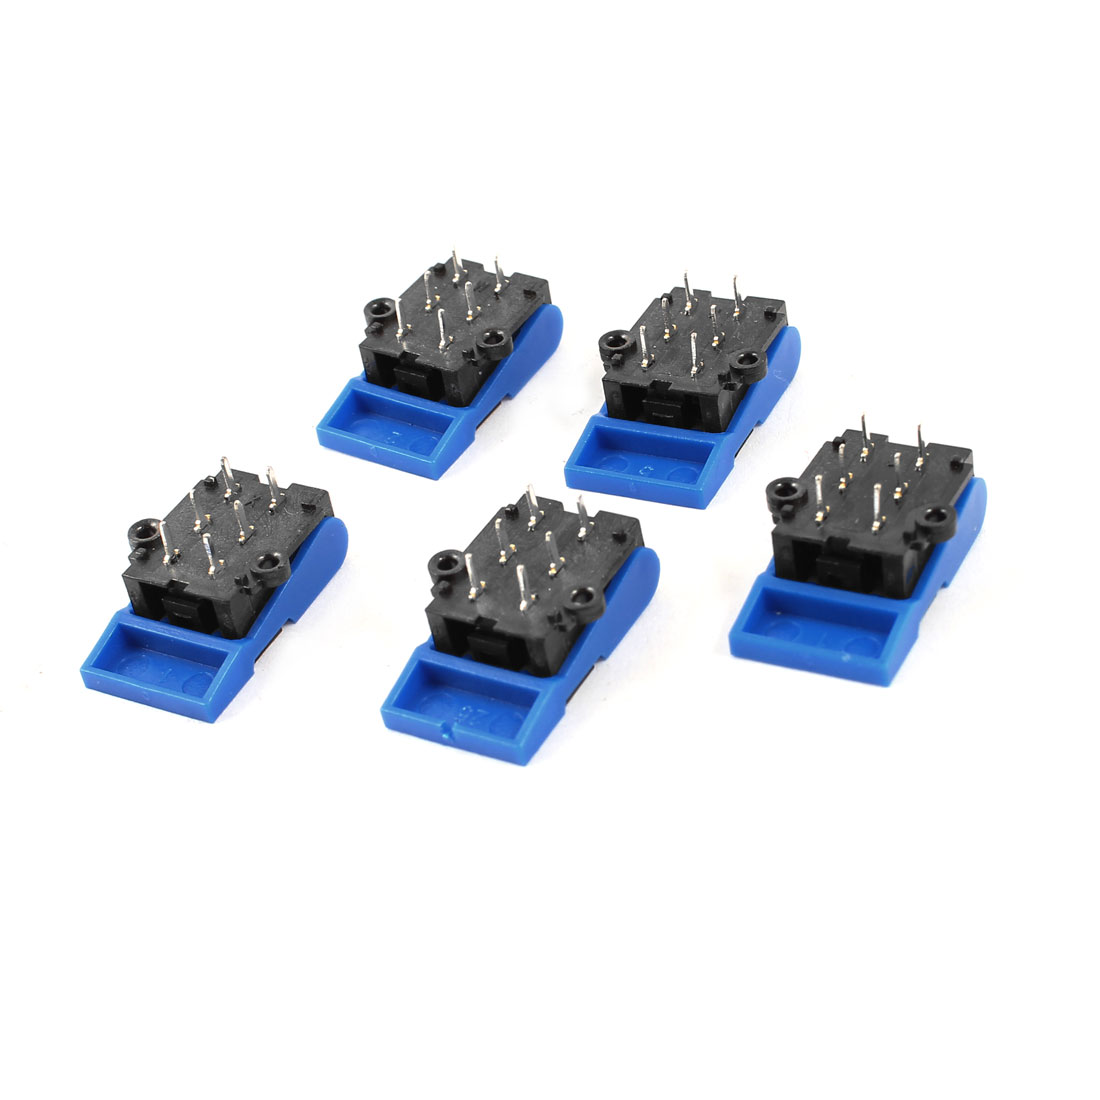 5 Pcs 6-Pin PCB Mount Plastic Hook Switch Black Blue for Telephone